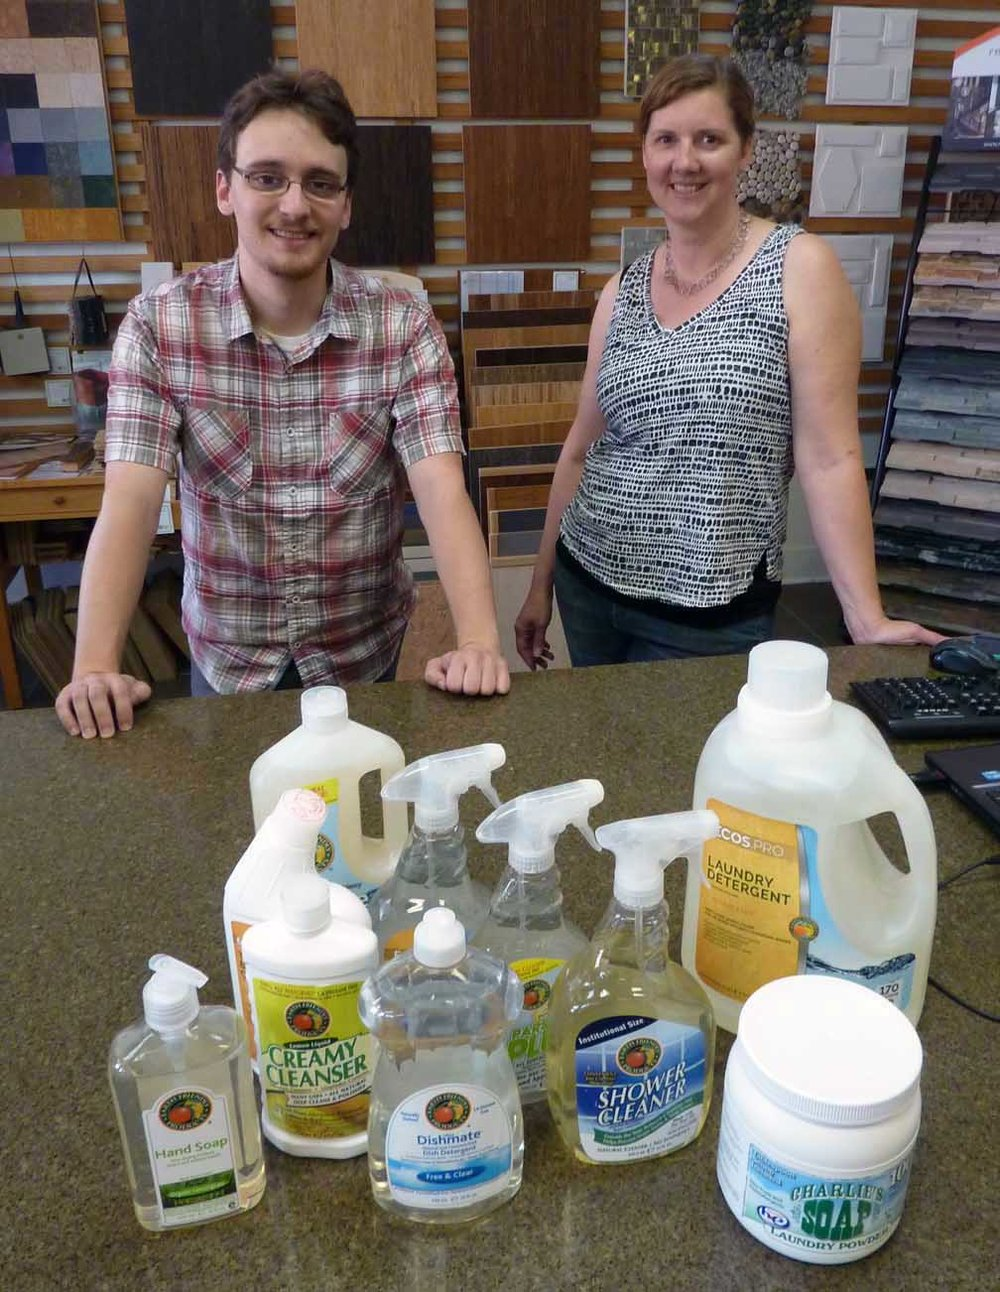 Ecos Laundry Detergent refills cost less than Costco at Green Home Experts. Sales Associates Chris Christou and Amy Struckmeyer show the range of green cleaning supplies available for refill at bargain prices.